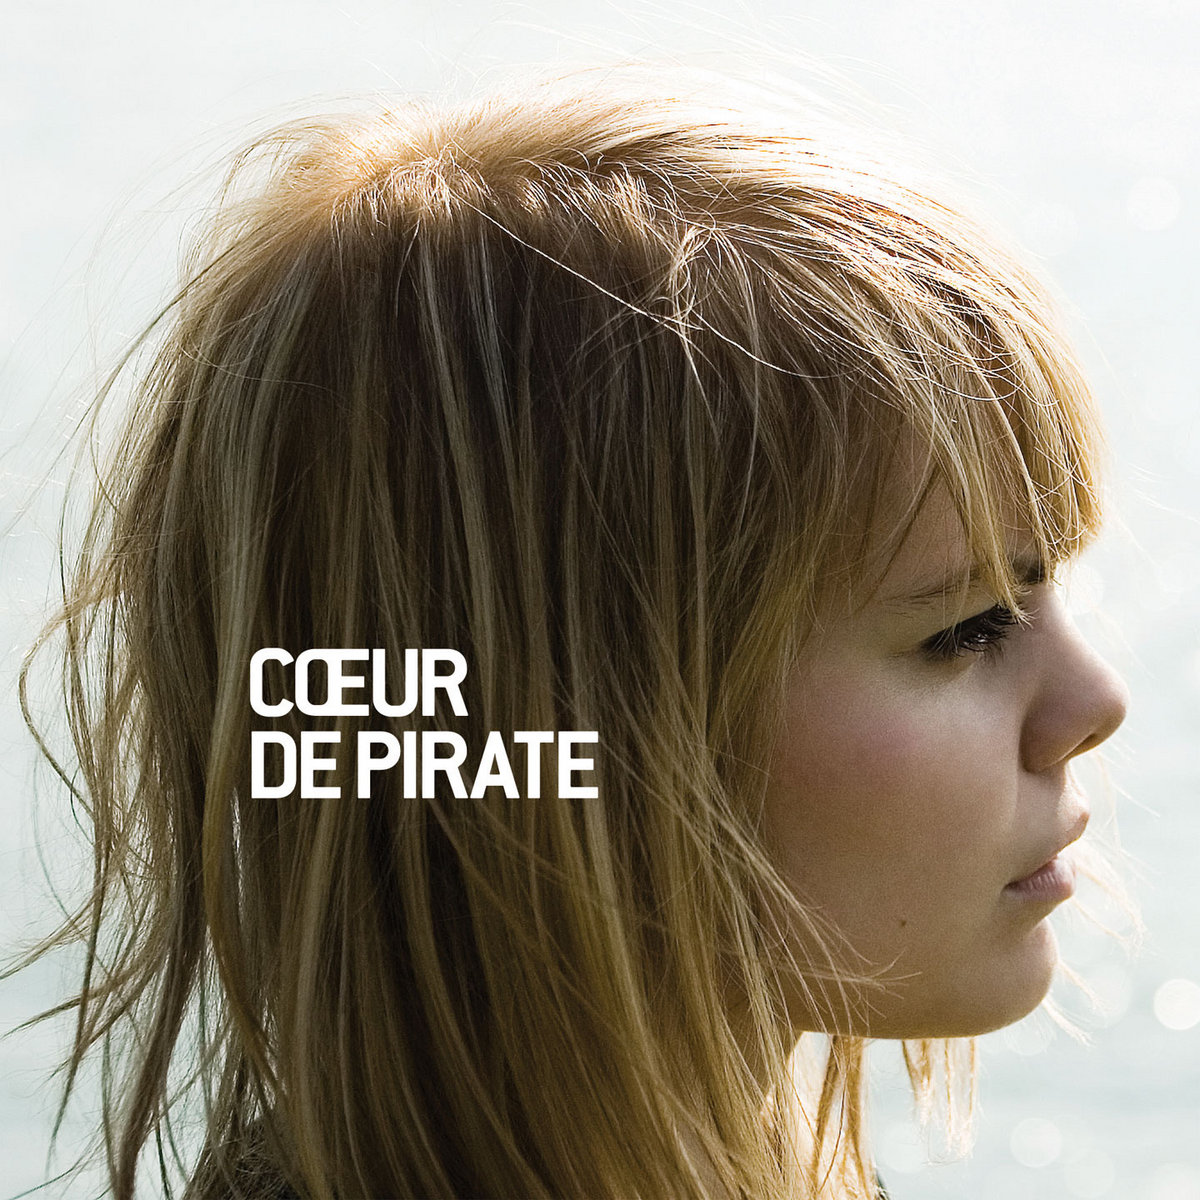 Coeur De Pirate C Ur De Pirate